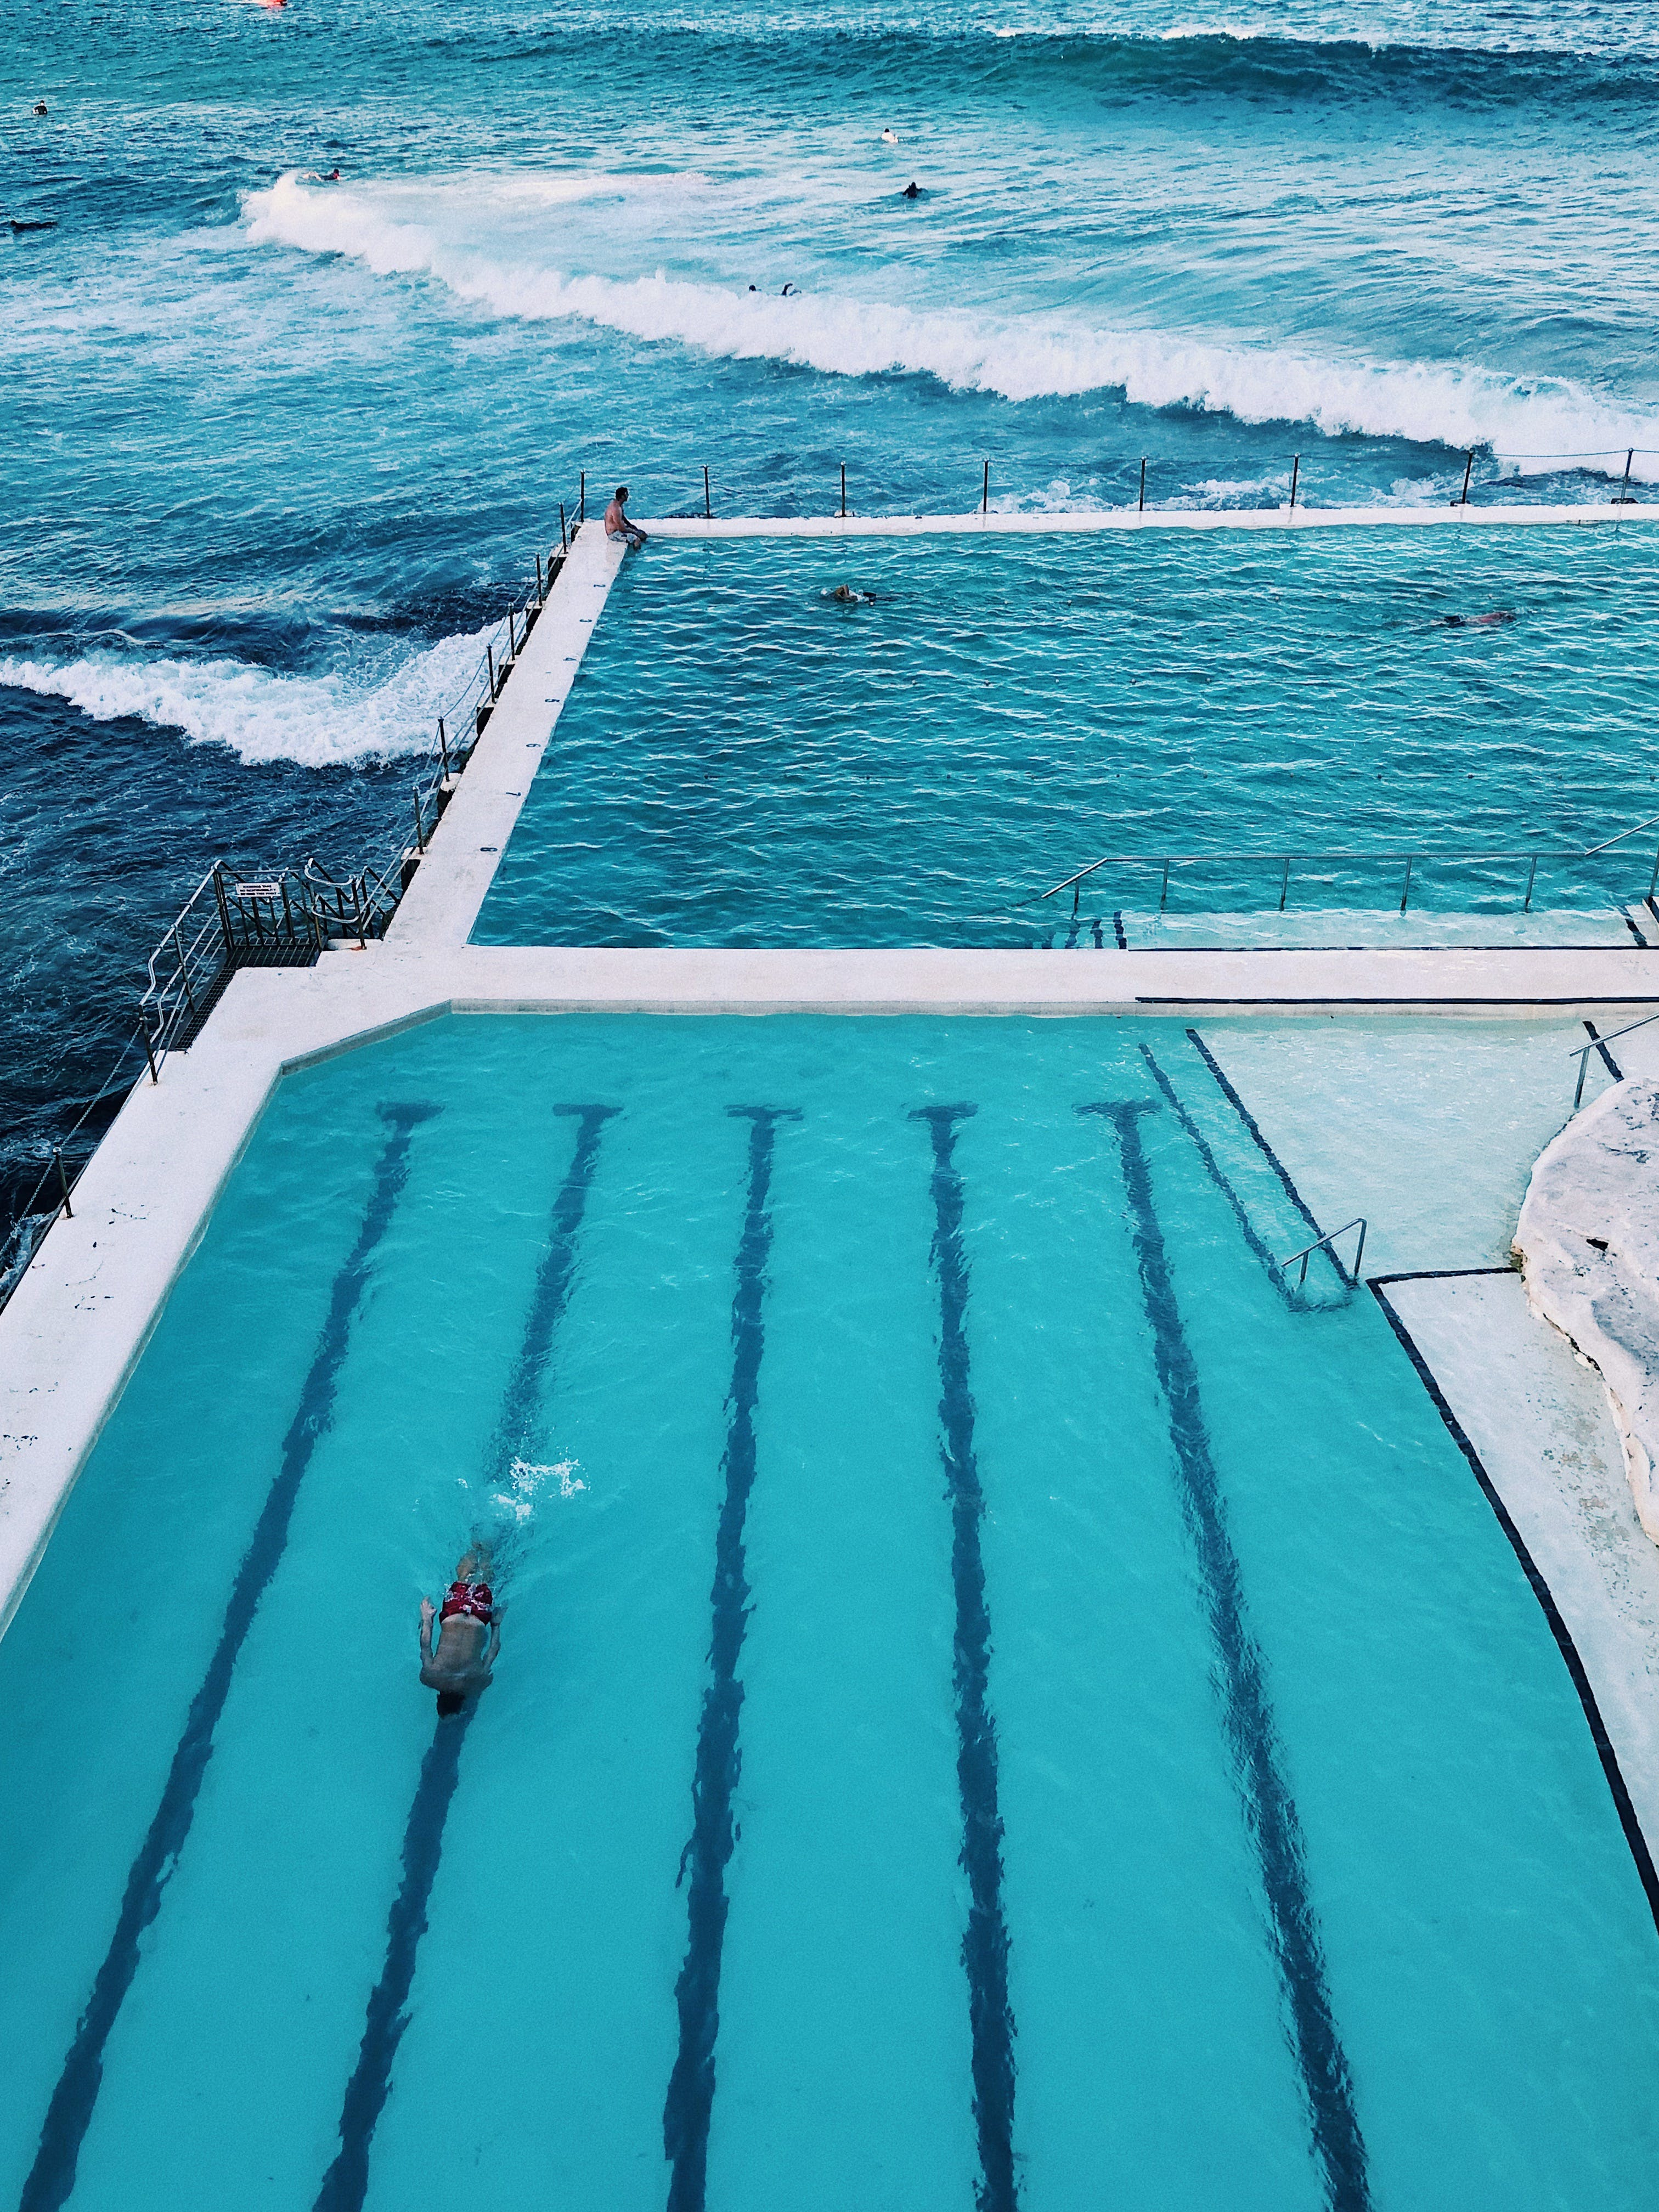 Aerial Photography of Pool and Body of Water